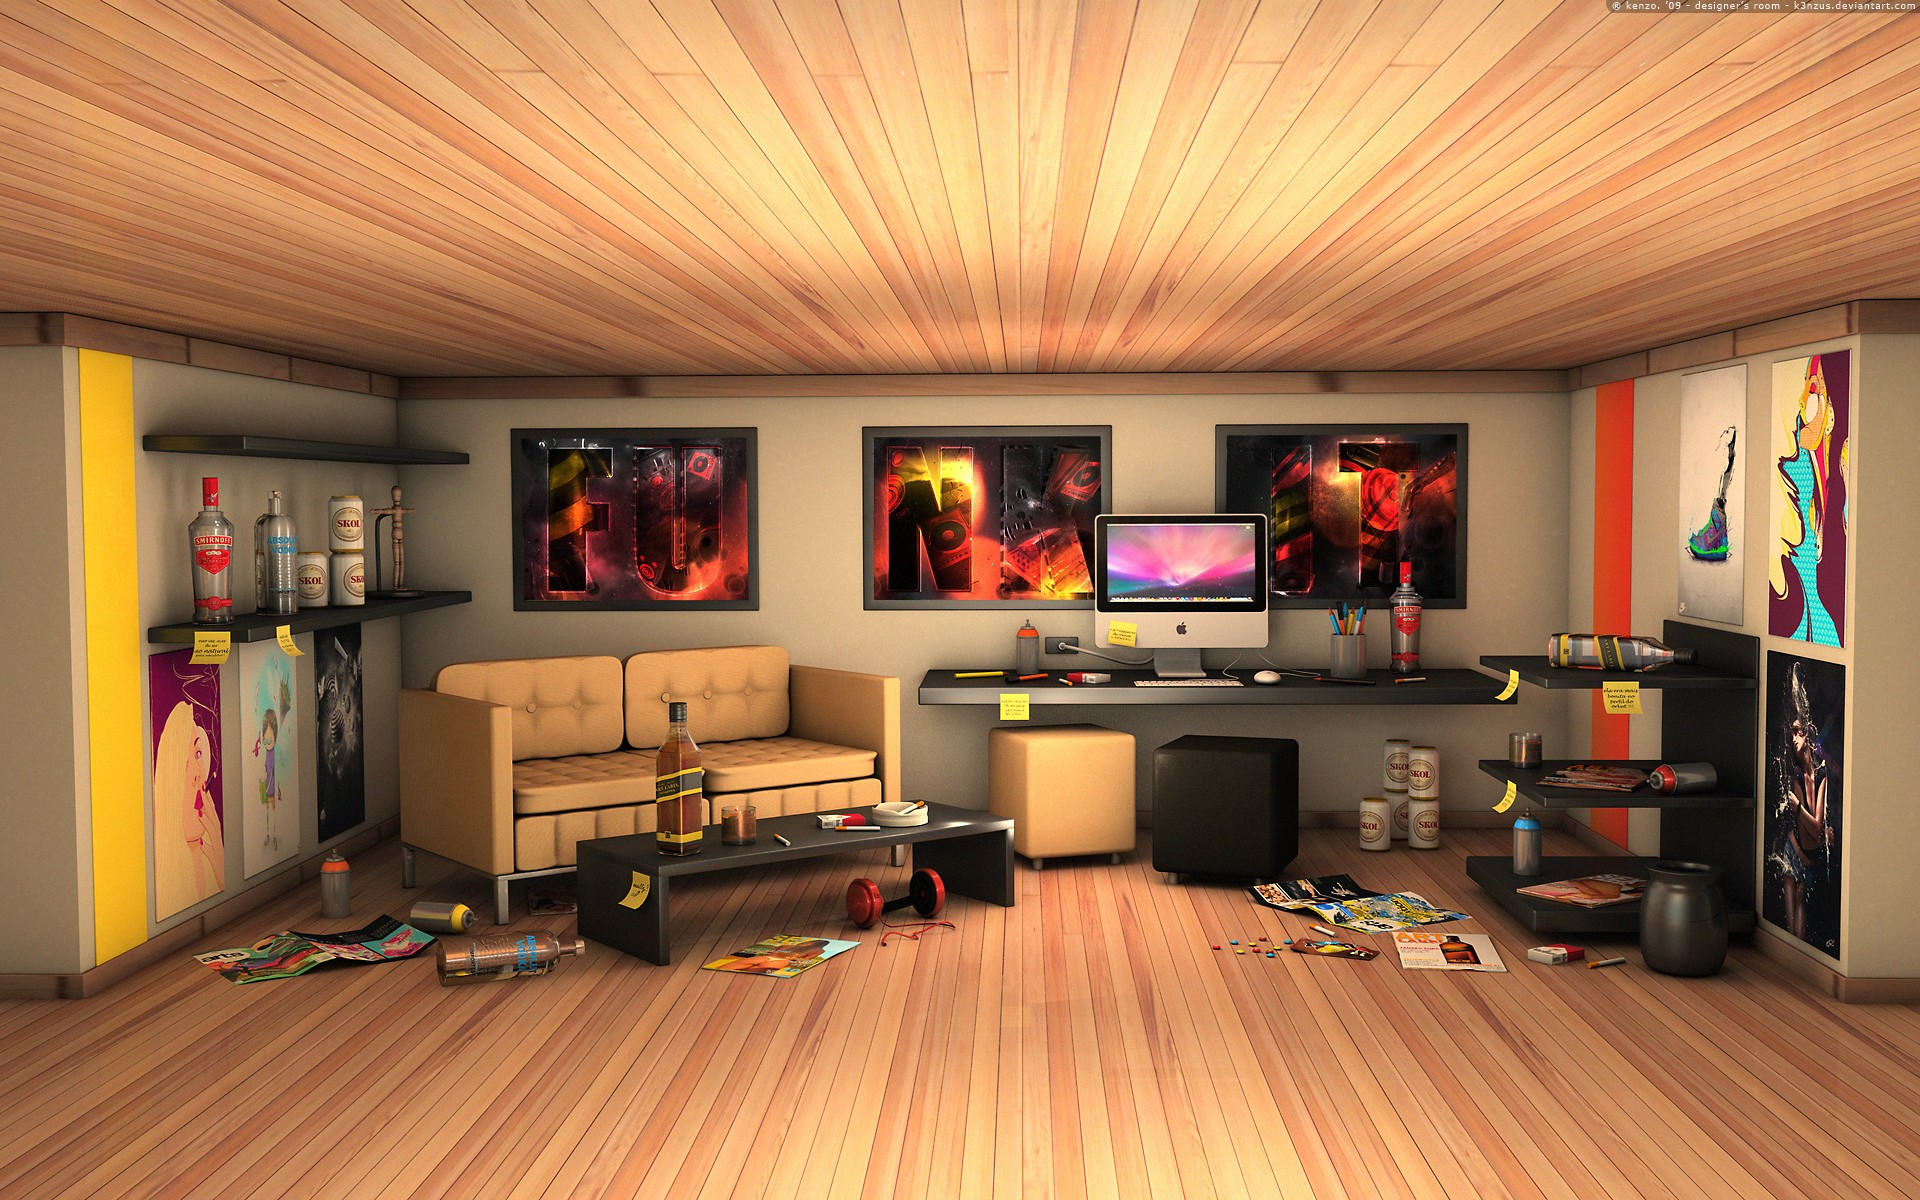 Room web designer: Mak and mess 1920x1200.